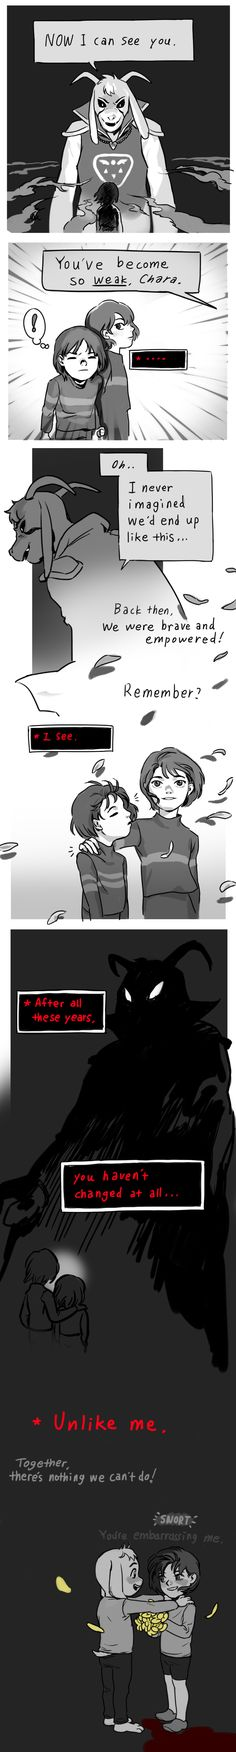 Undertale Comic: What if.. by alganiq on DeviantArt <<< This is something I'd picture from Underfell or a similar AU.